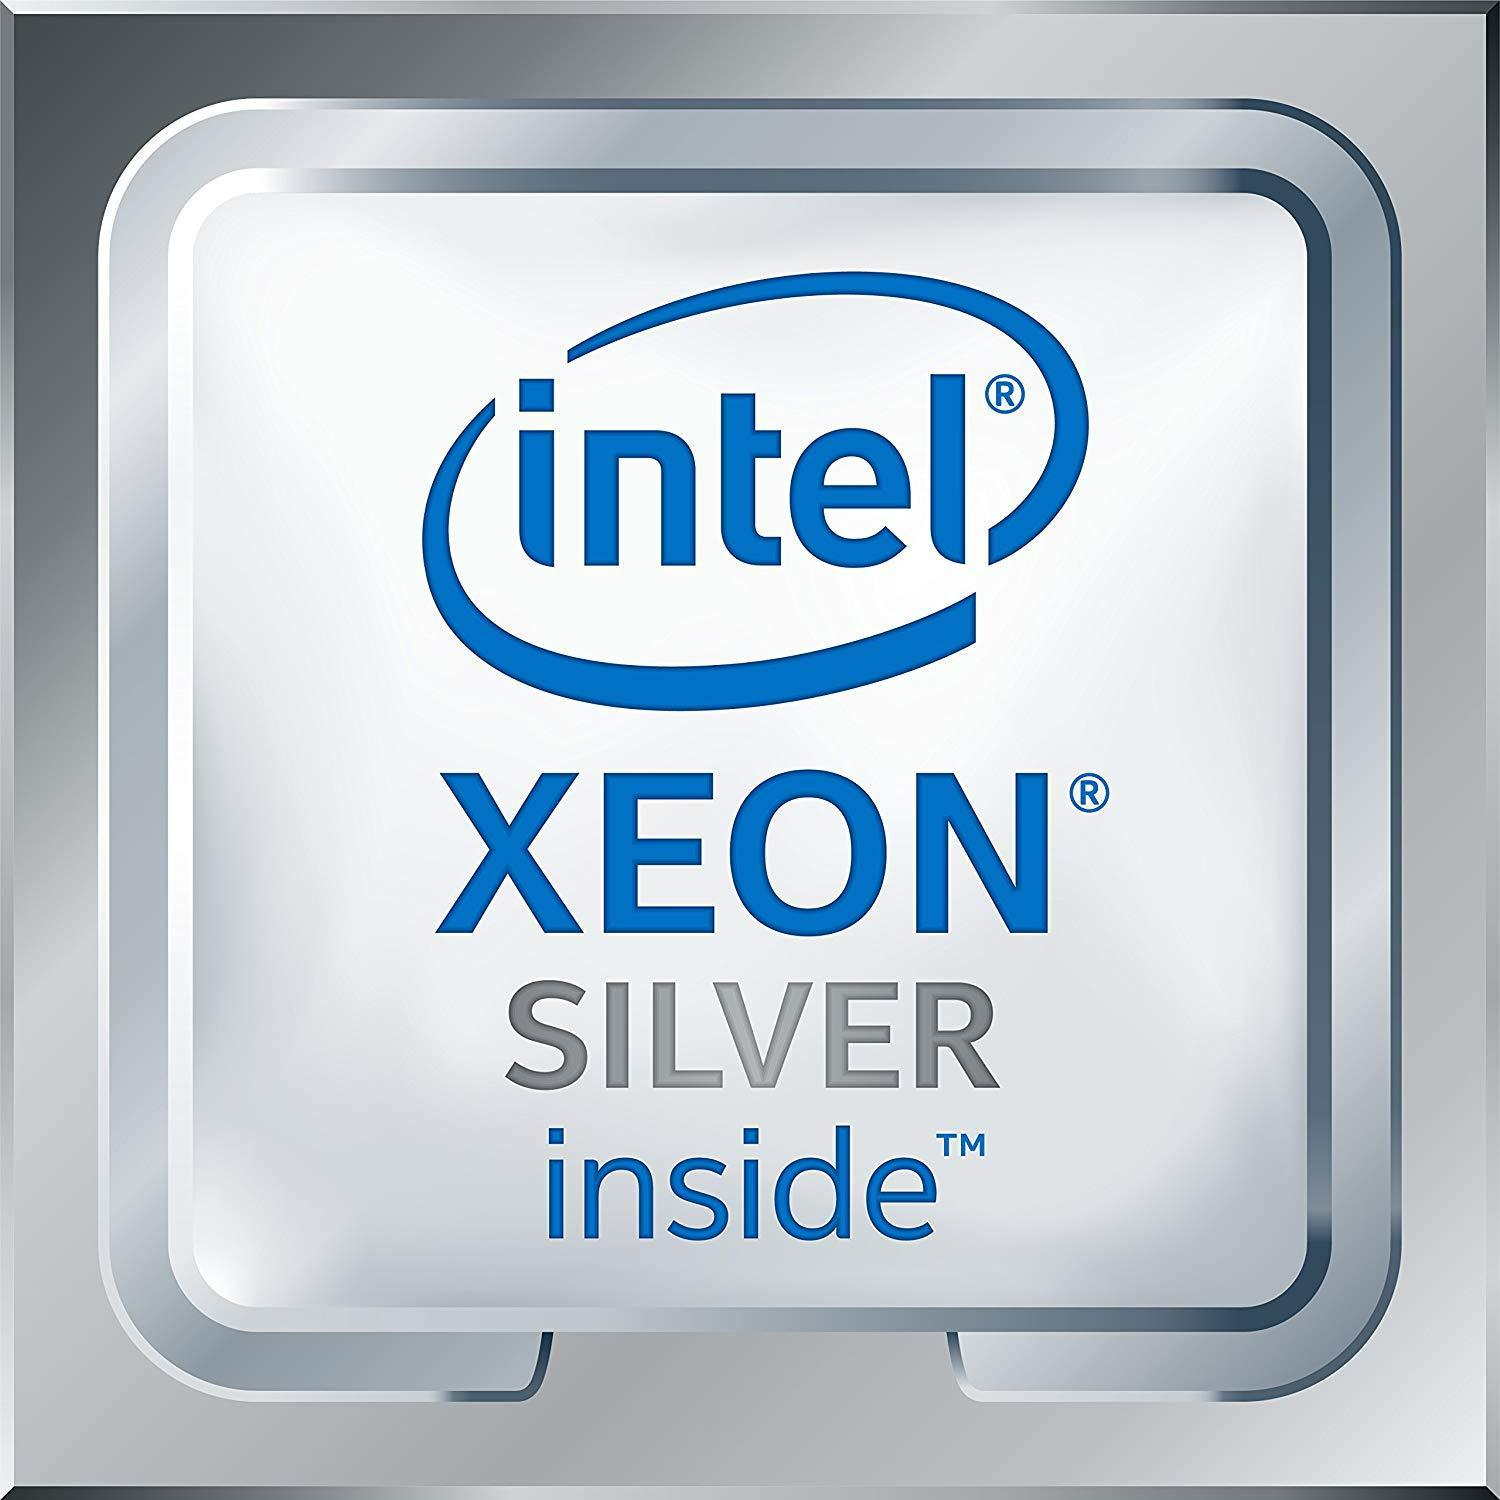 SRG24 - Intel Xeon-Silver 4210R (2.4GHz/10-core/100W) Processor